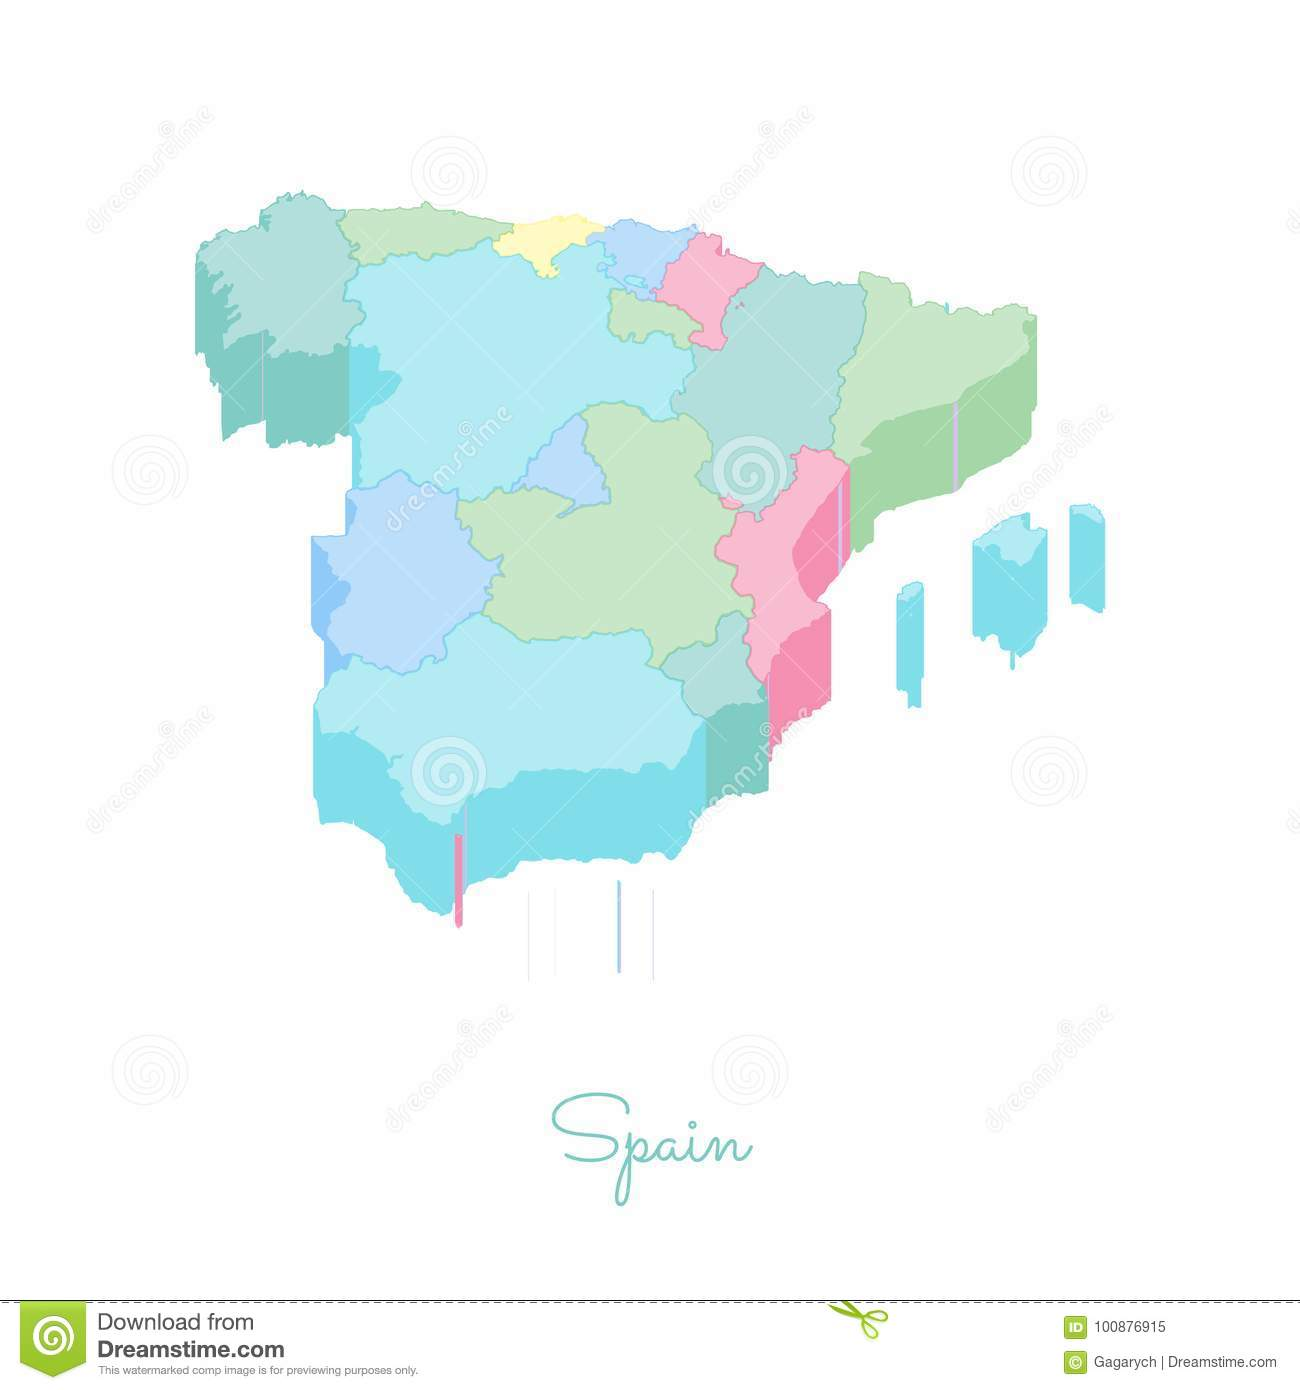 Map Of Spain By Region.Spain Region Map Colorful Isometric Top View Stock Vector